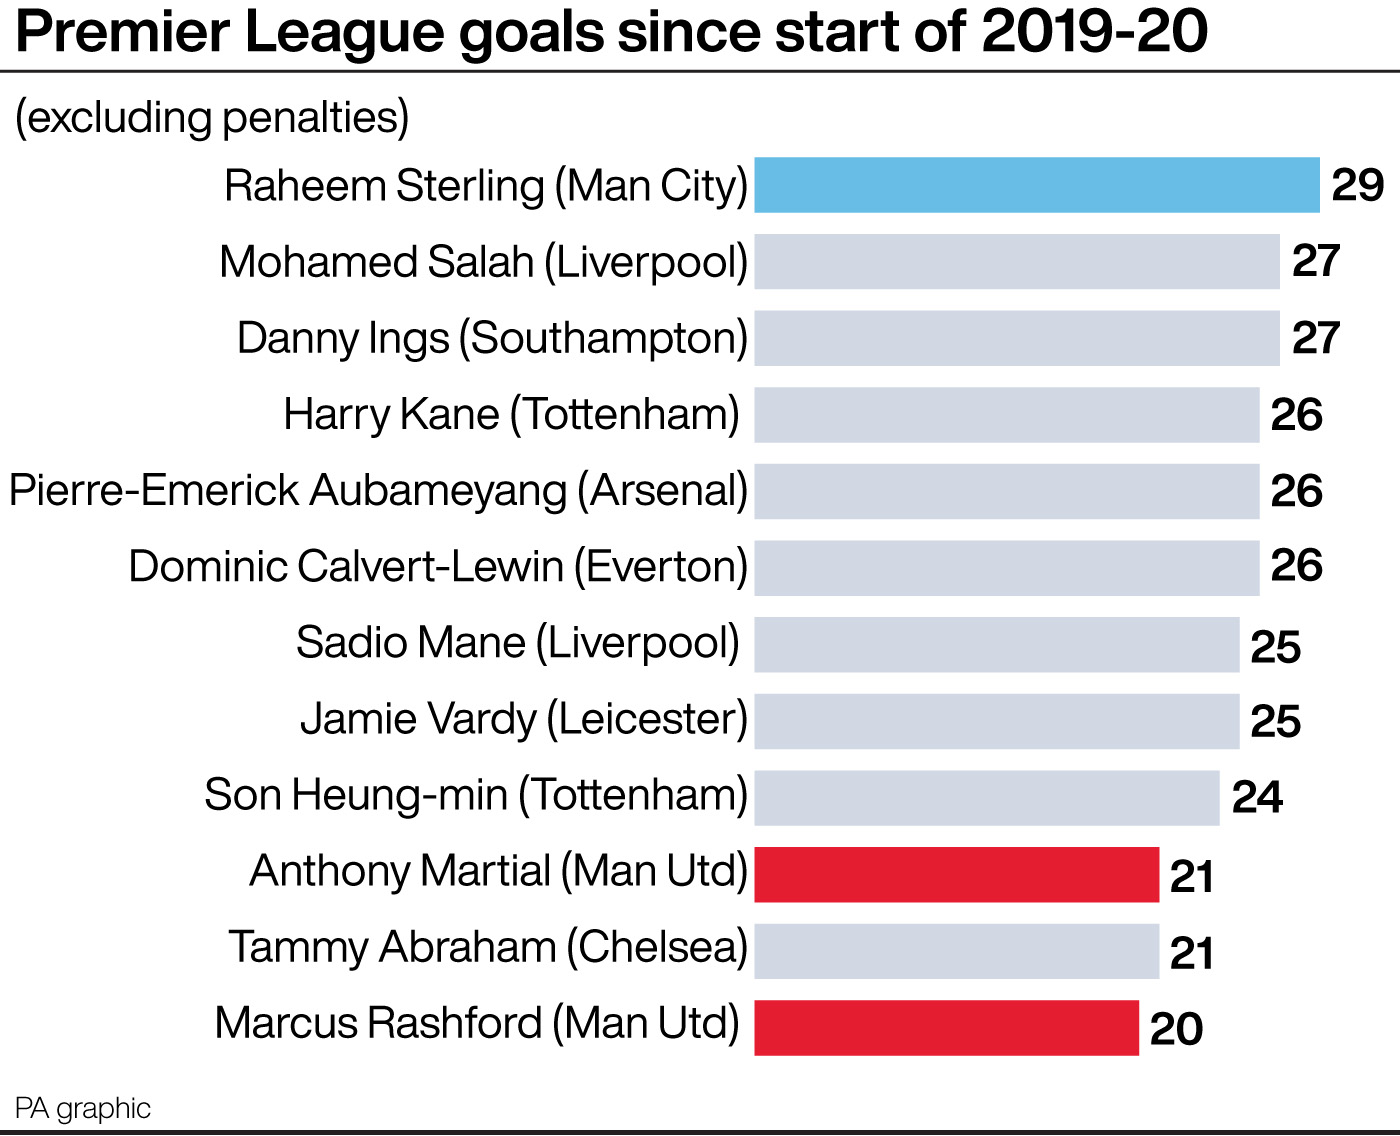 Premier League goals excluding penalties since start of 2019-20